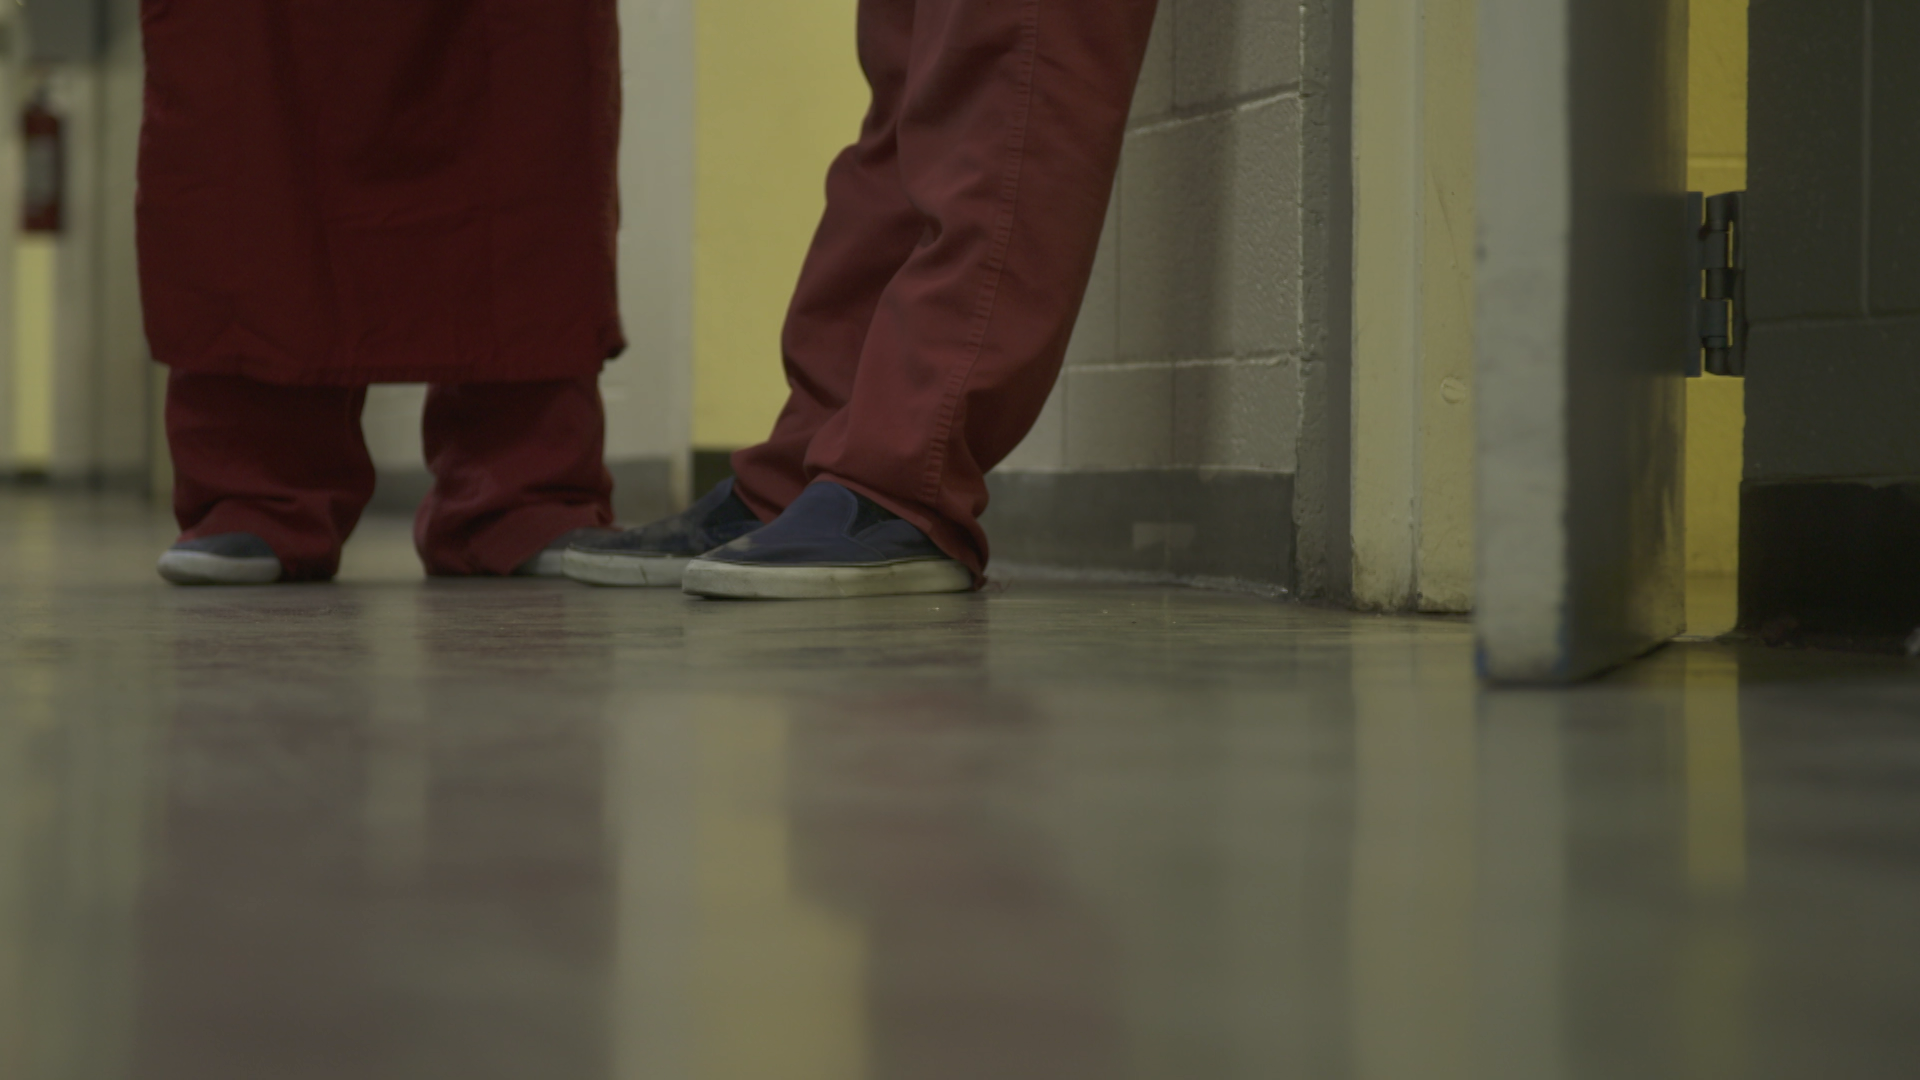 Two inmates stand in a hallway at the Pima County Jail.